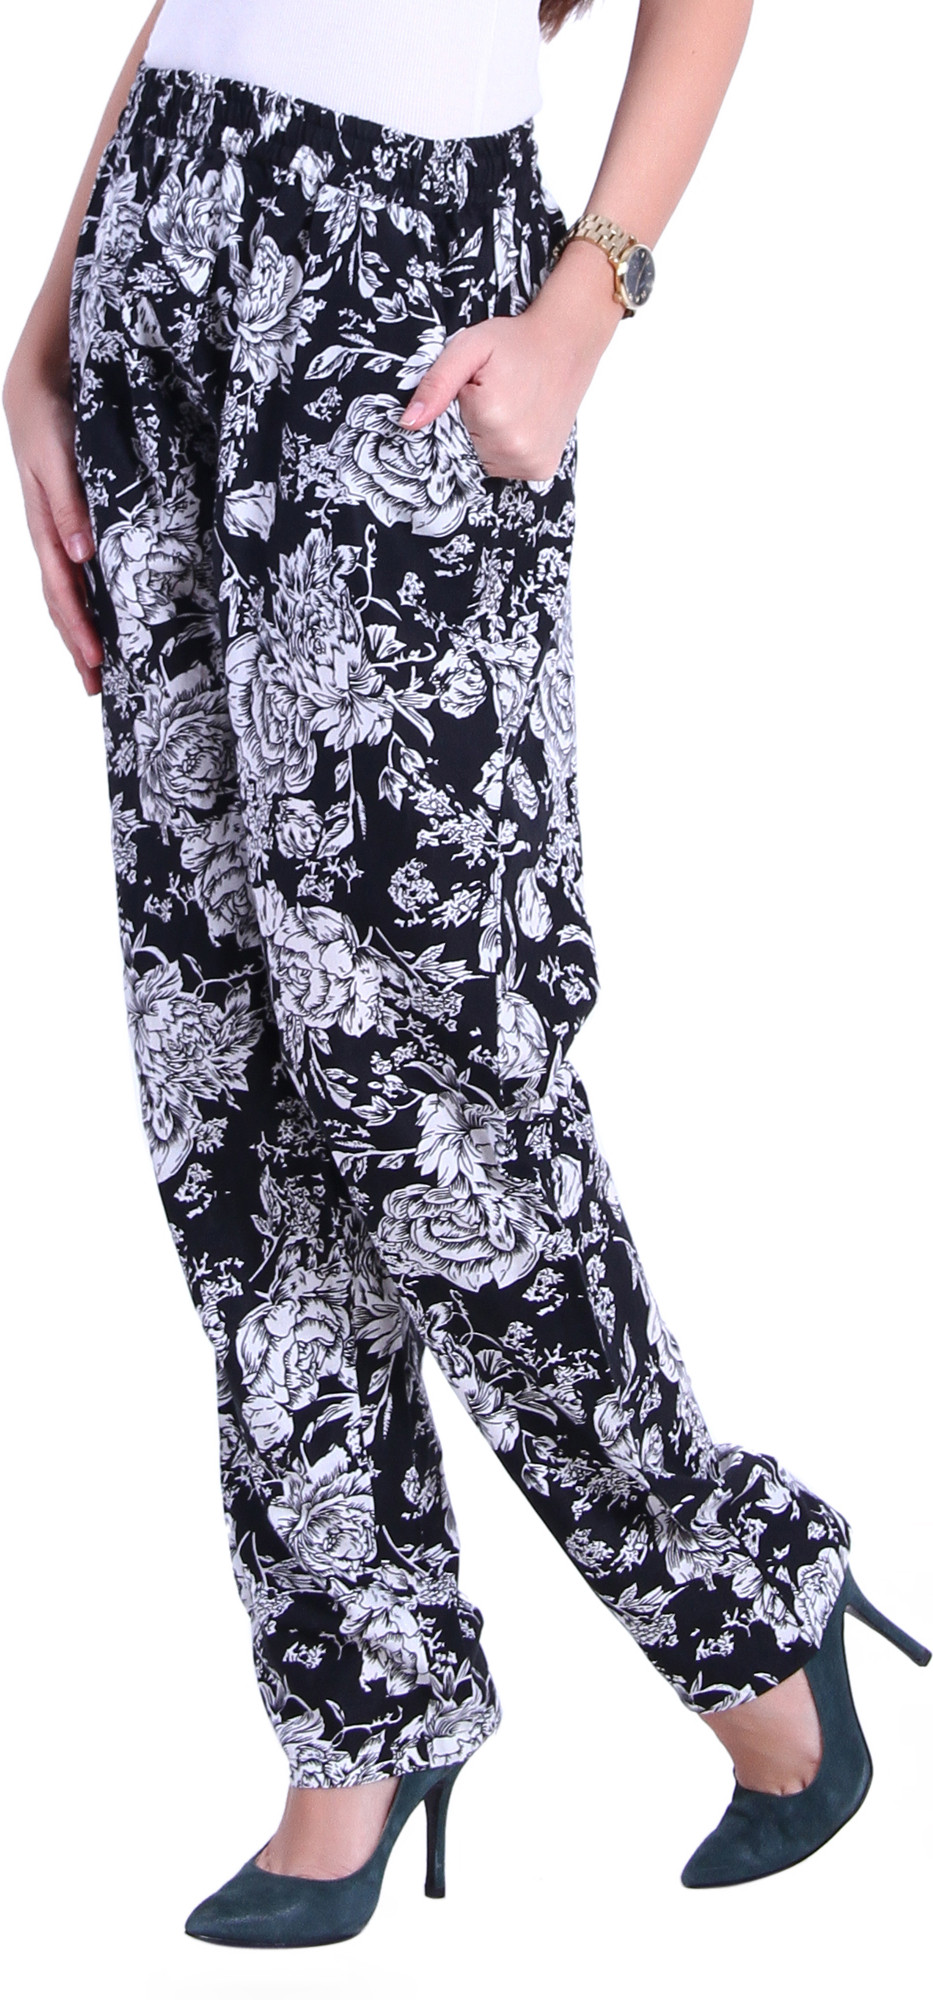 The Gud Look Floral Print Polyester Womens Harem Pants